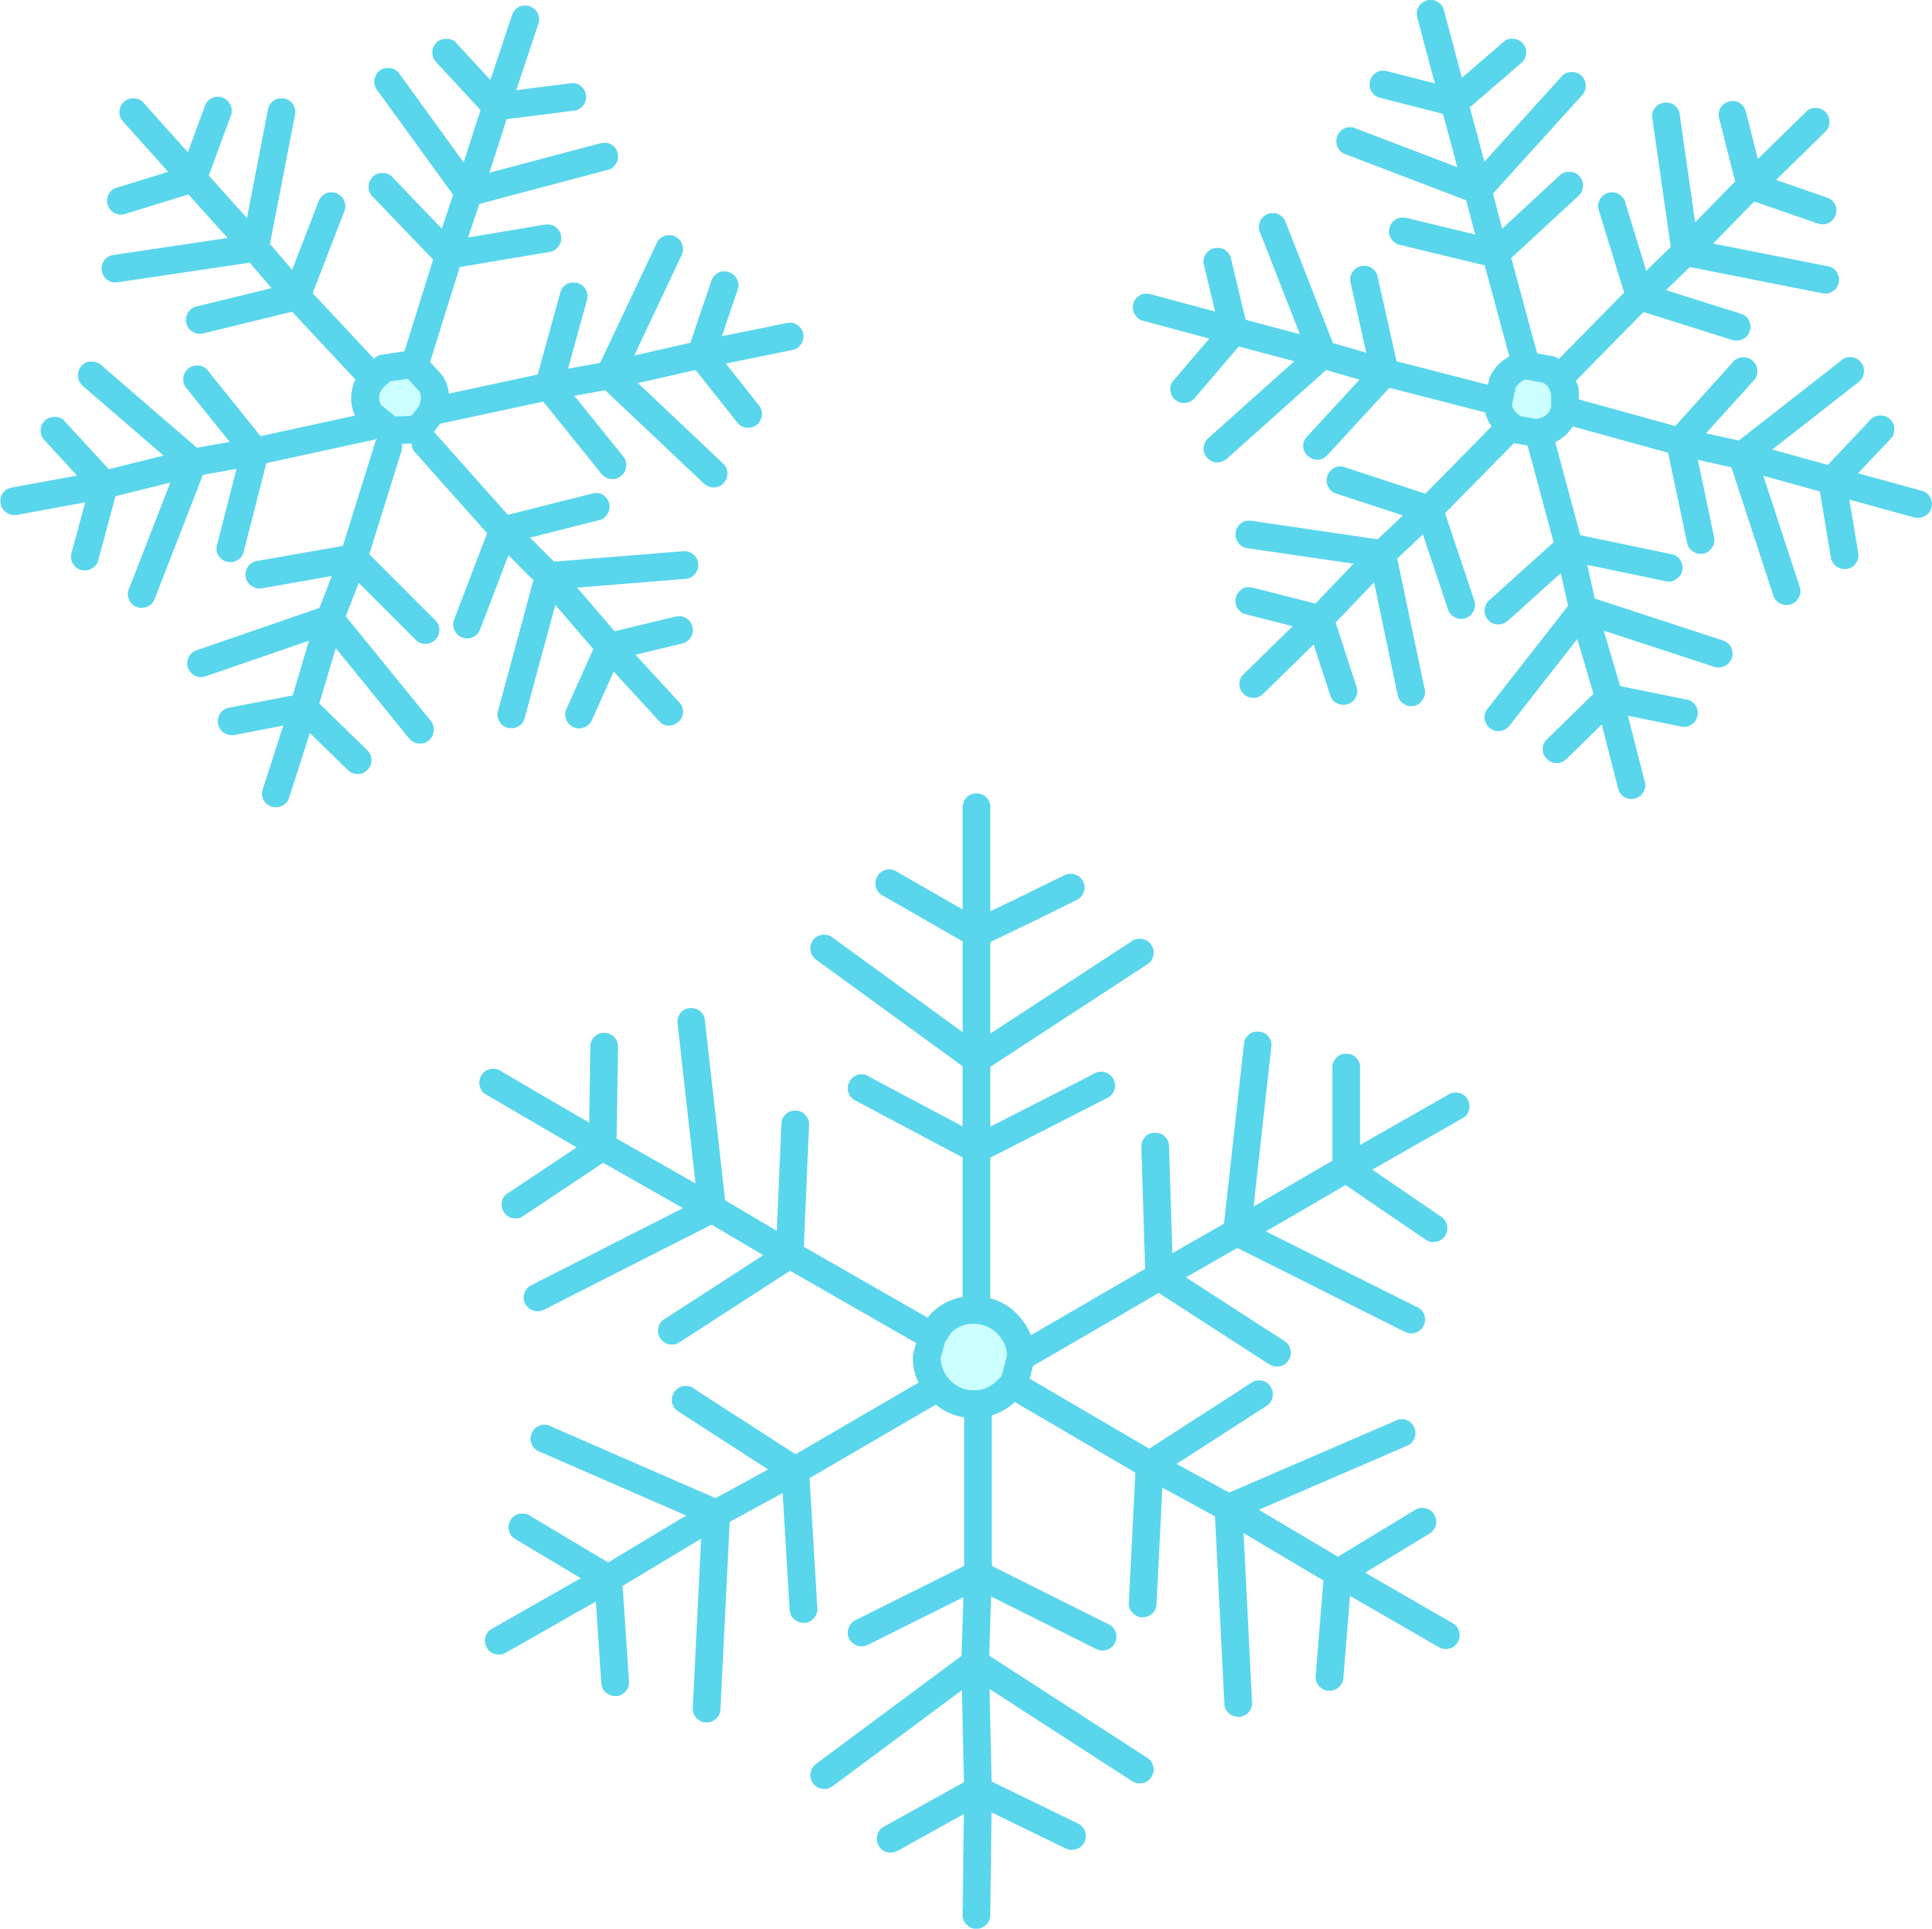 Snowflakes png cute. Image purepng free transparent